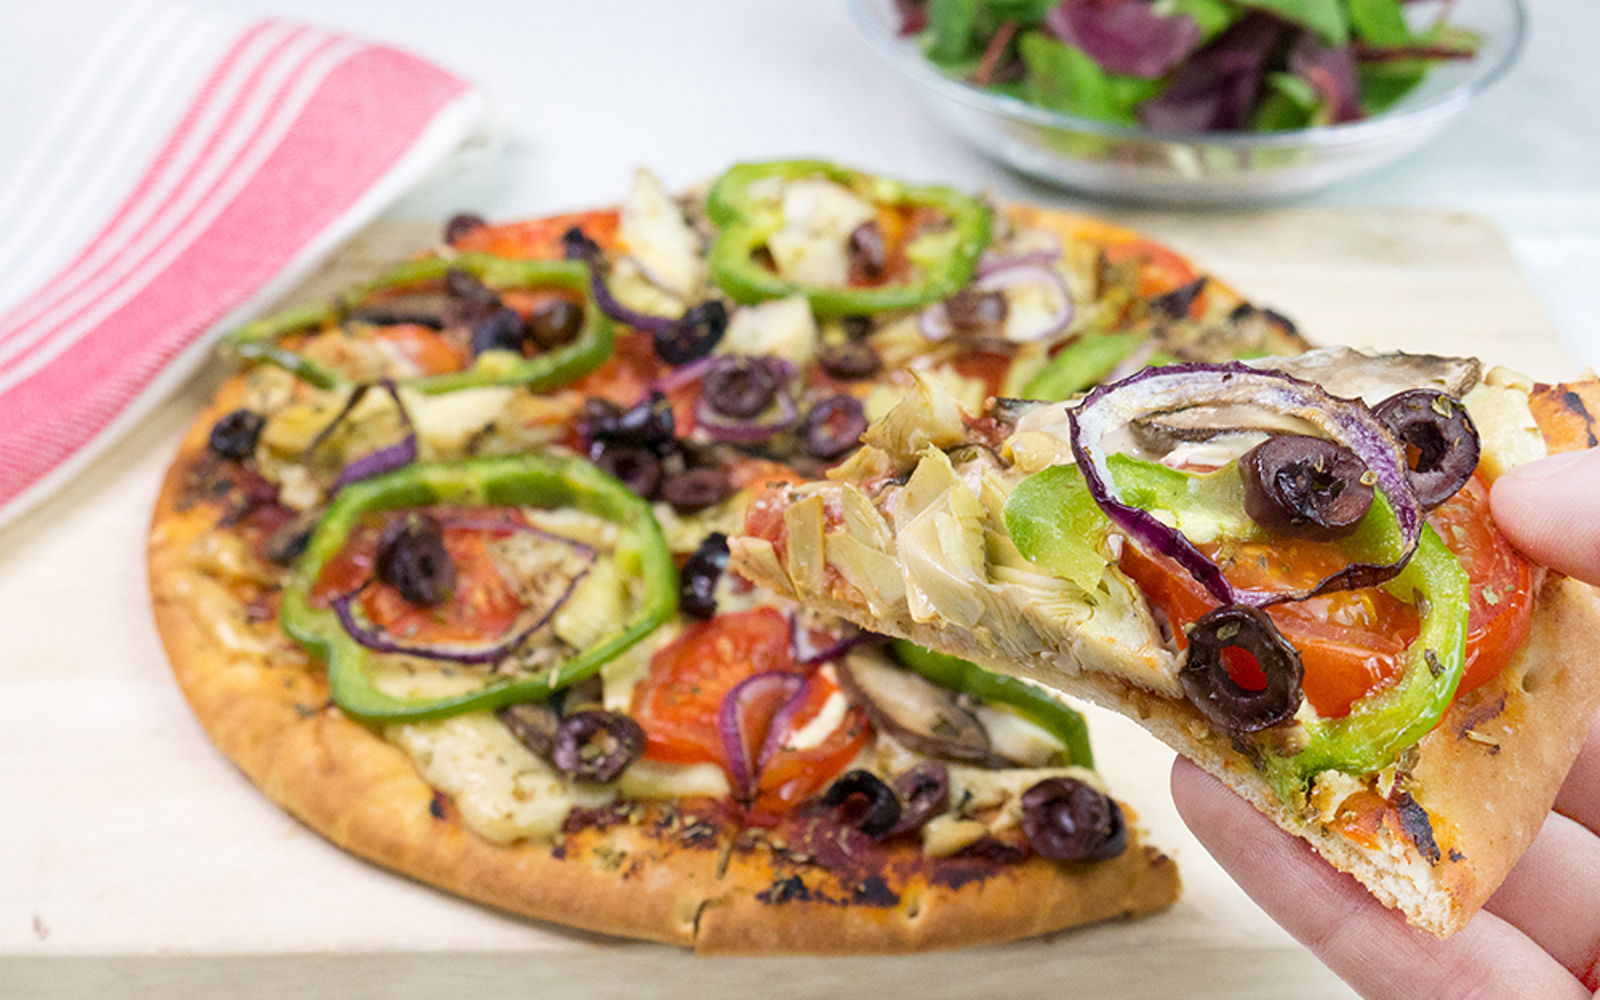 Cashew Cheese Pizza With Peppers Mushrooms and Artichokes